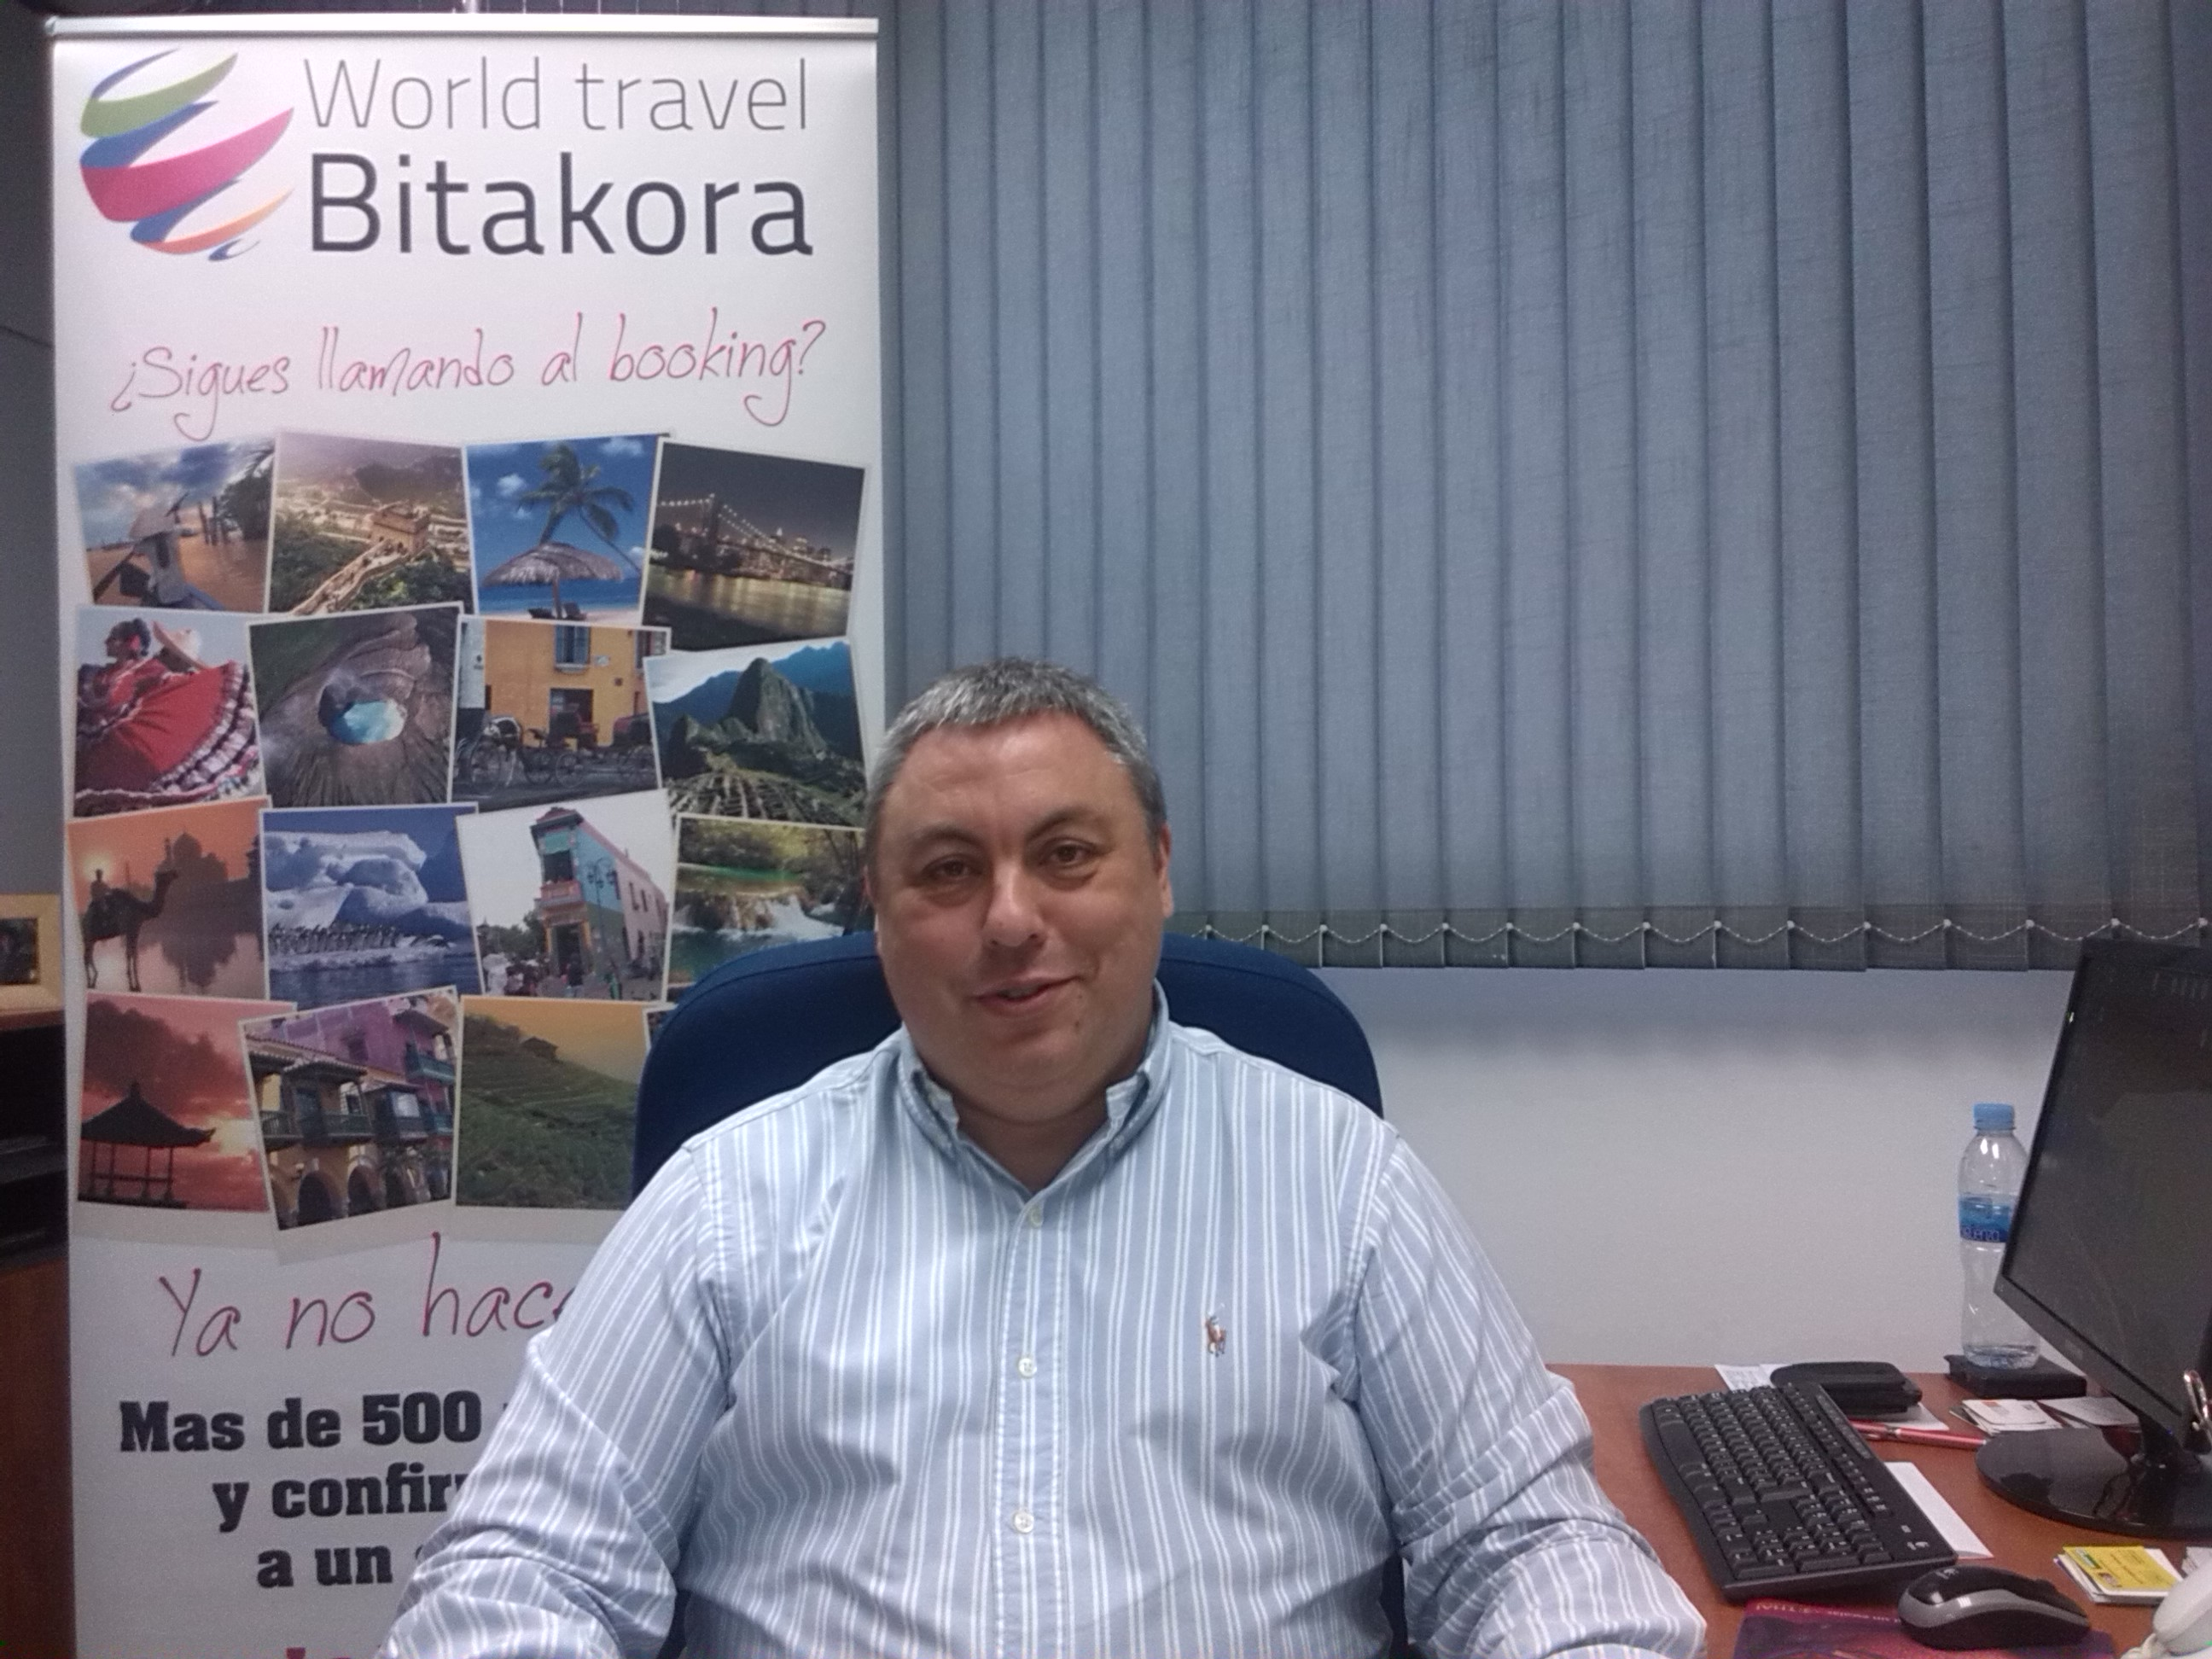 Patricio Barbancho de World Travel Bitakora